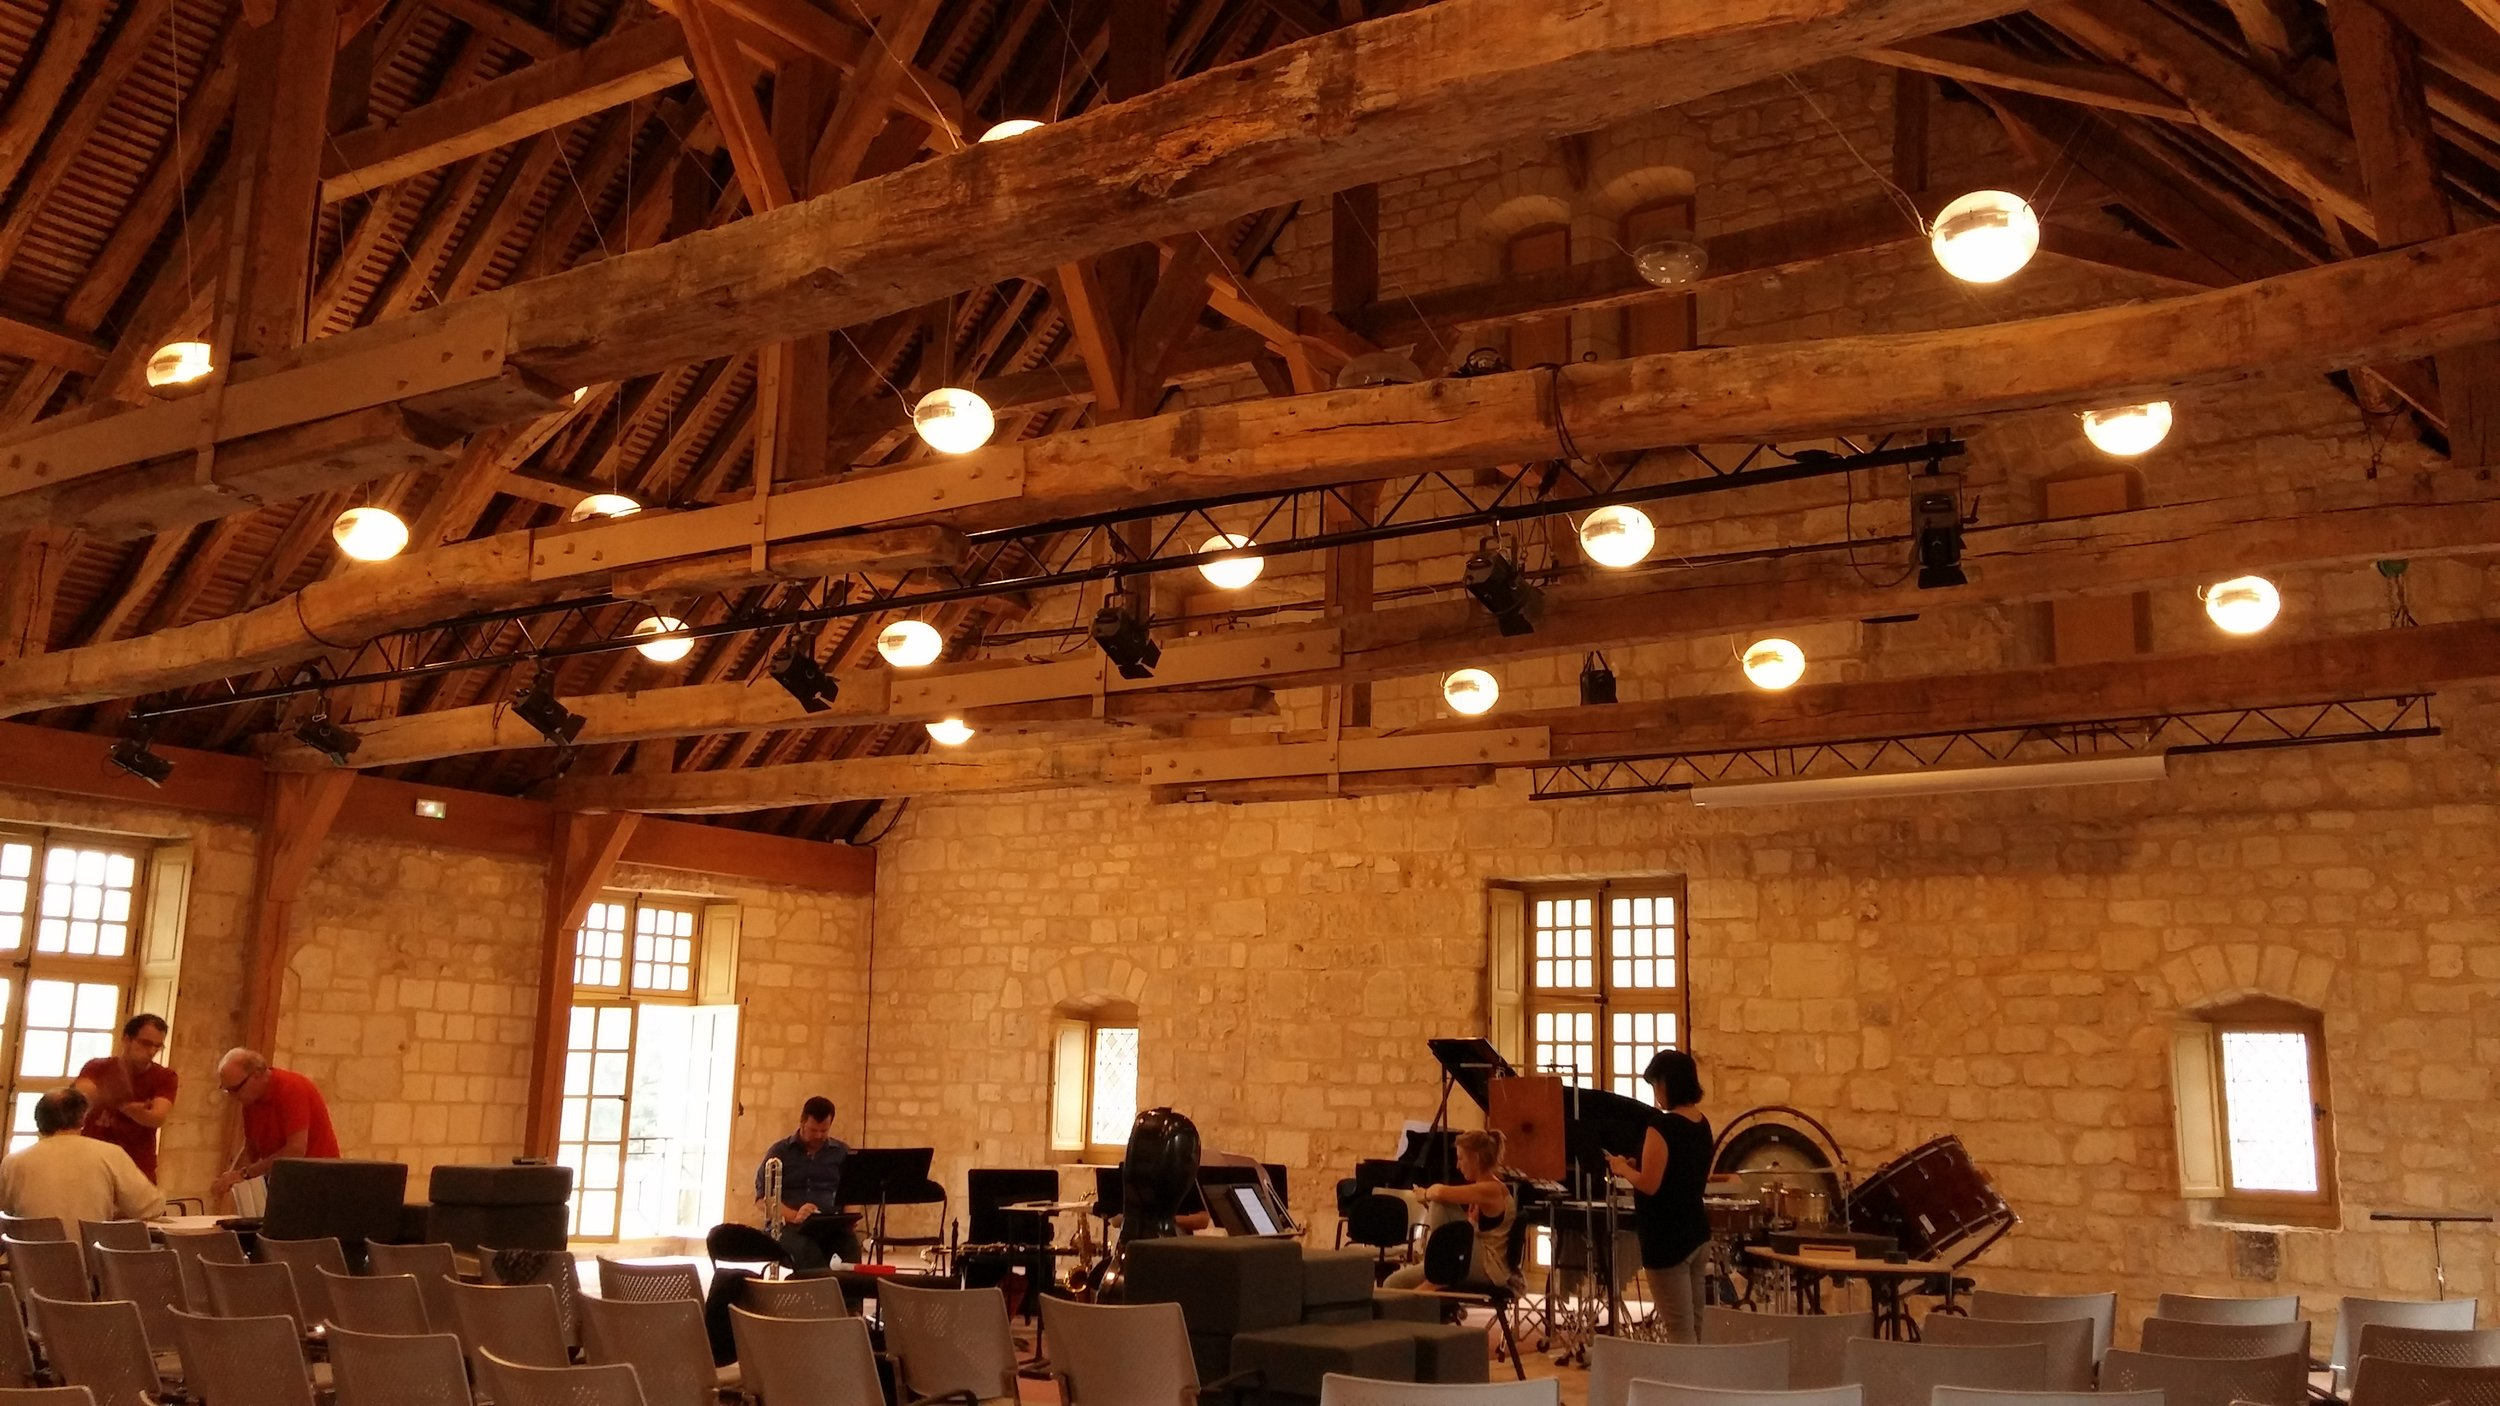 Gorgeous concert space (and former latrine for monks!) at Royaumont